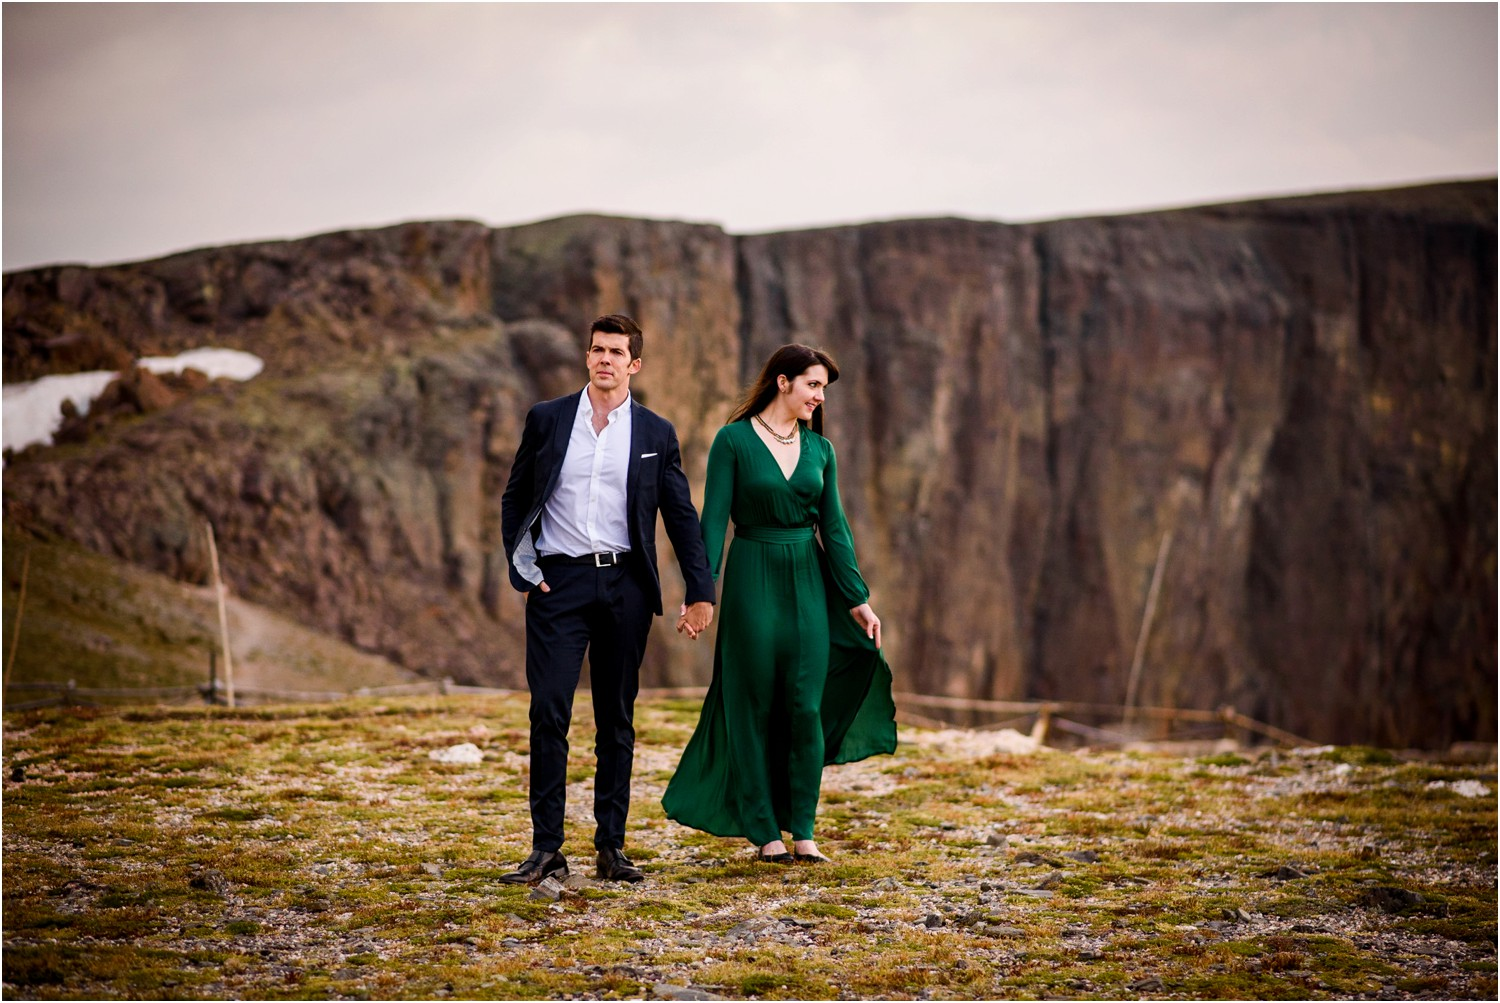 Rocky-mountain-national-Park-engagement-photography_0022.jpg